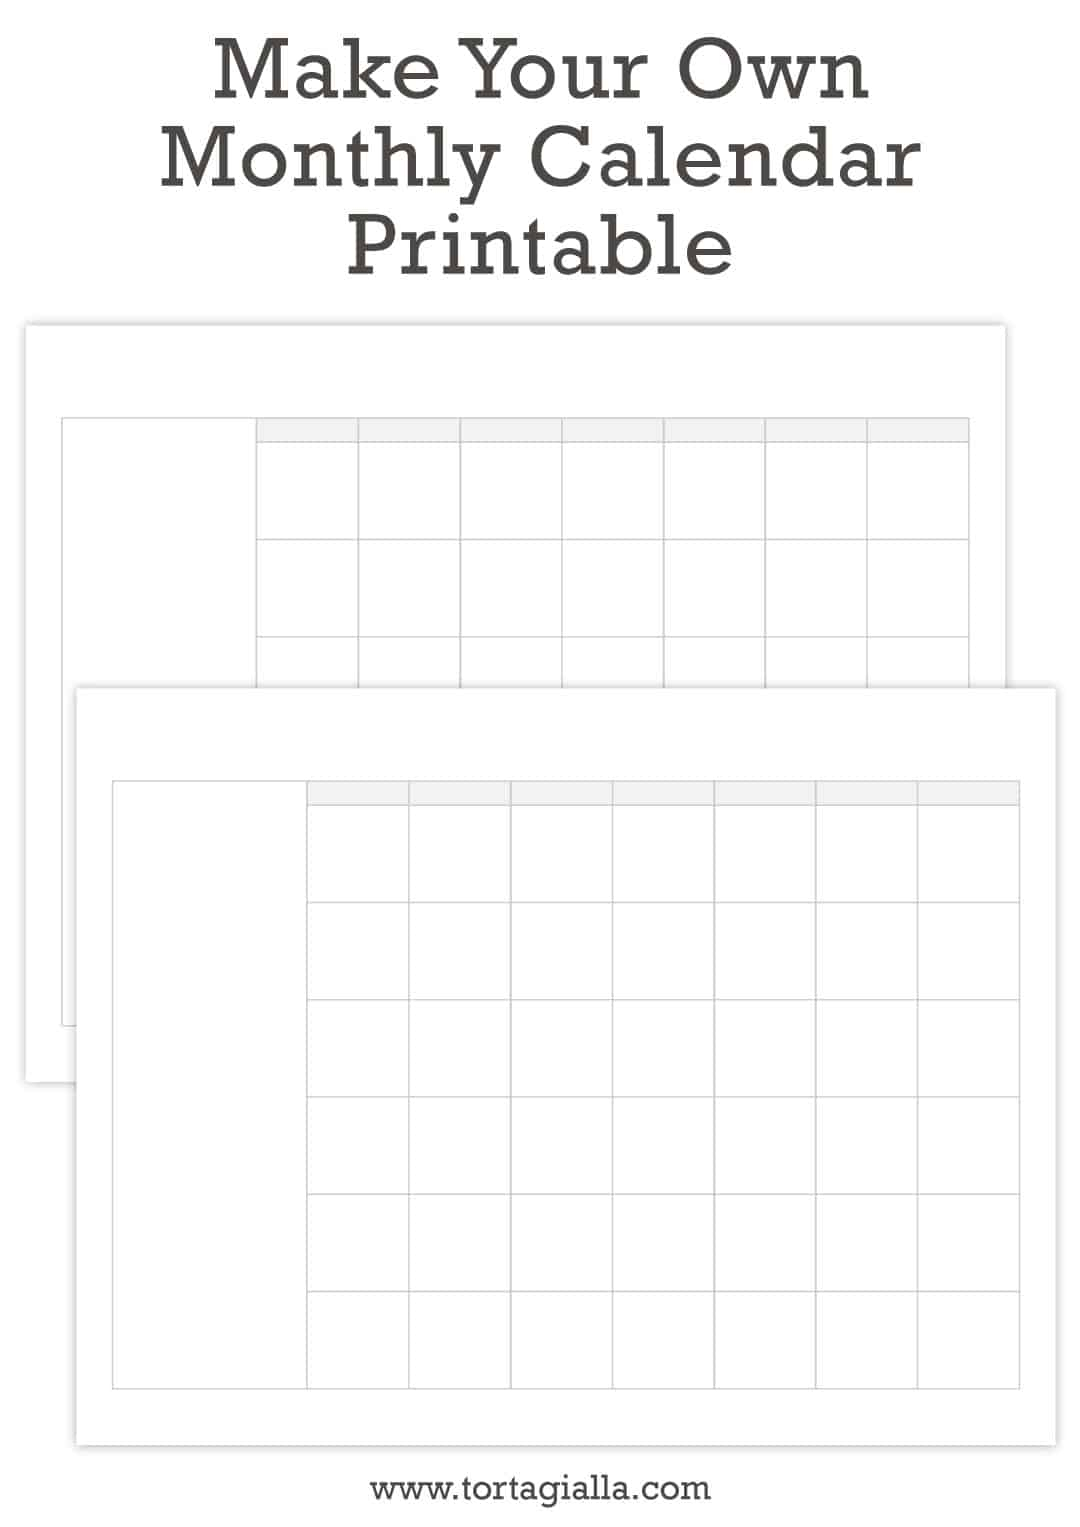 Make Your Own Monthly Calendar Printable - Tortagialla